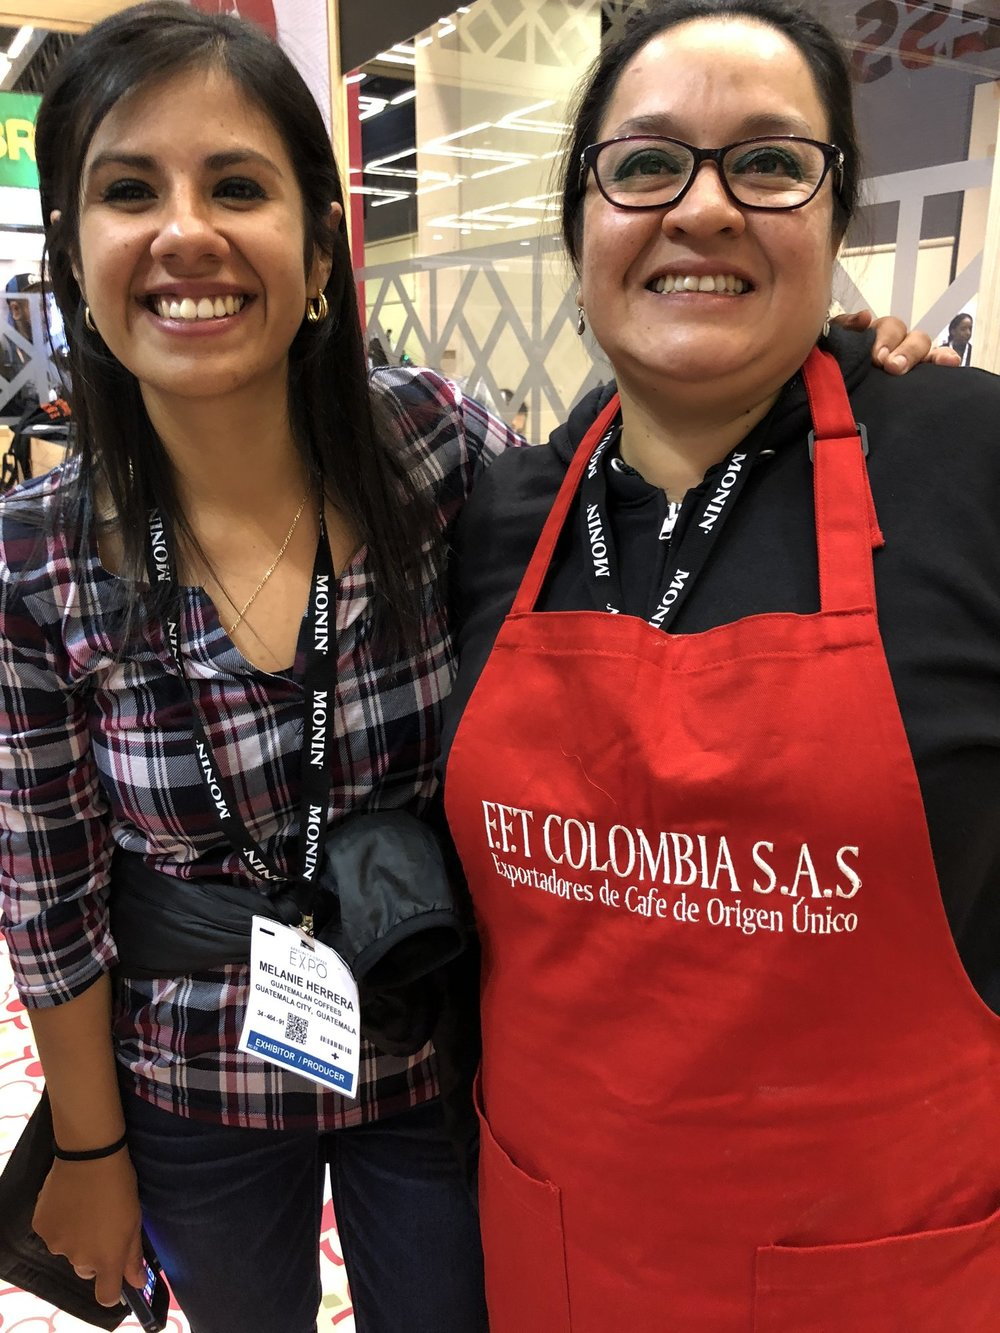 Dulce Barrera (right) with Melanie Herrerra, both of Bella Vista, Guatemala